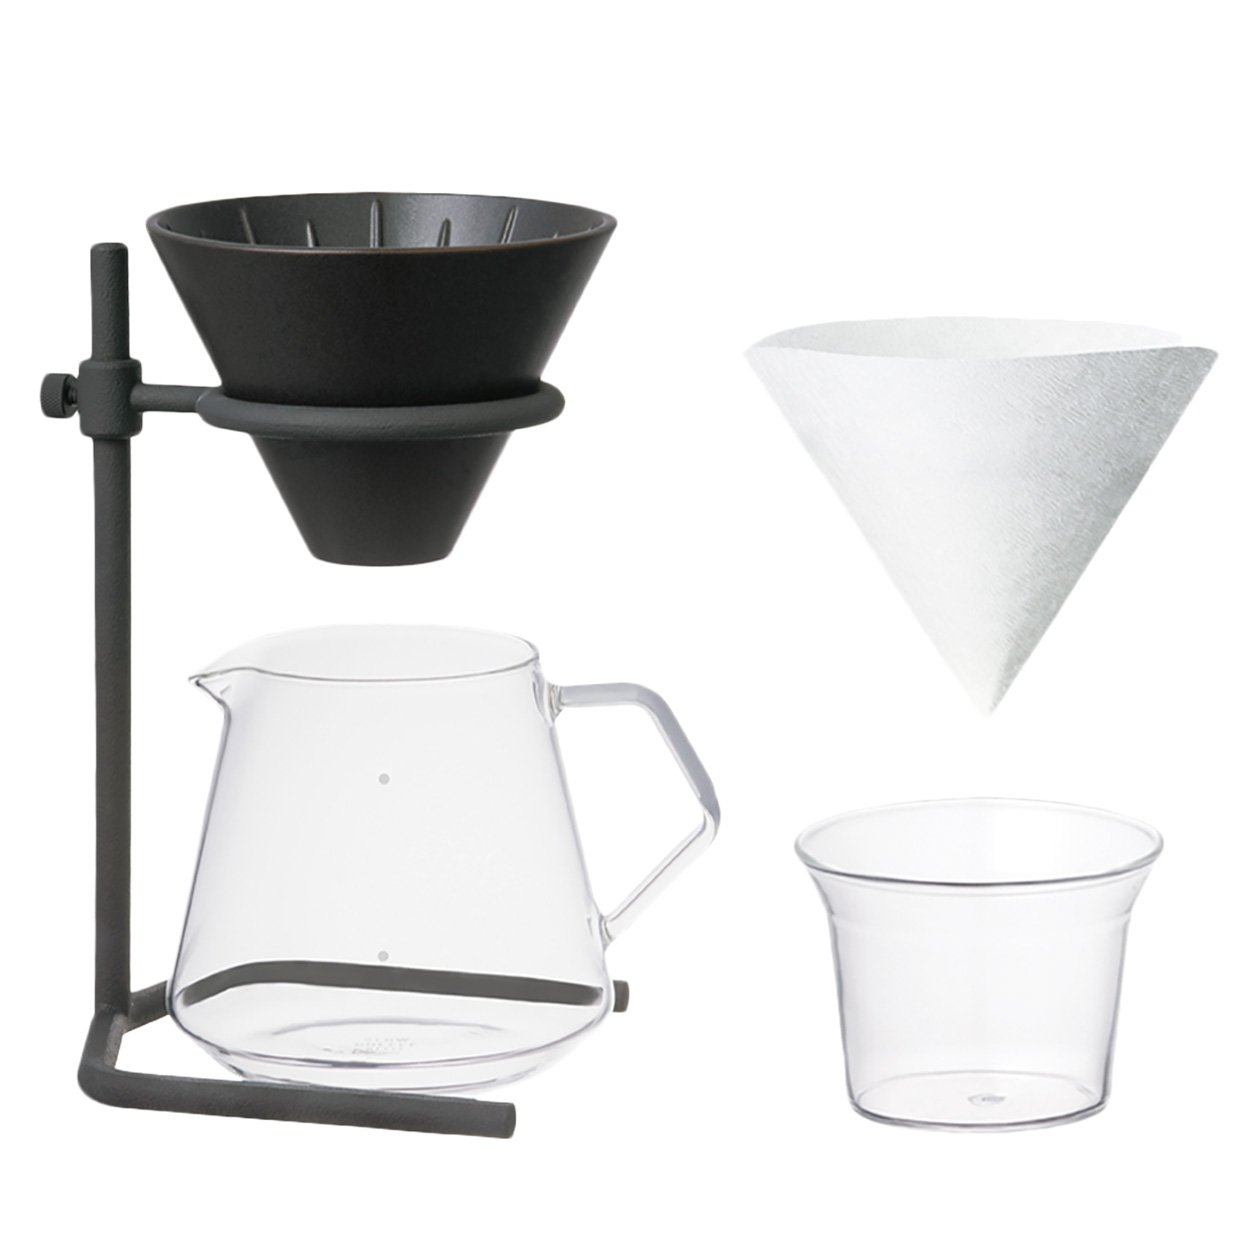 kinto-products-slow-coffee-style-specialty-S04-BrewerStandSet-4cups-2_1260x.jpg